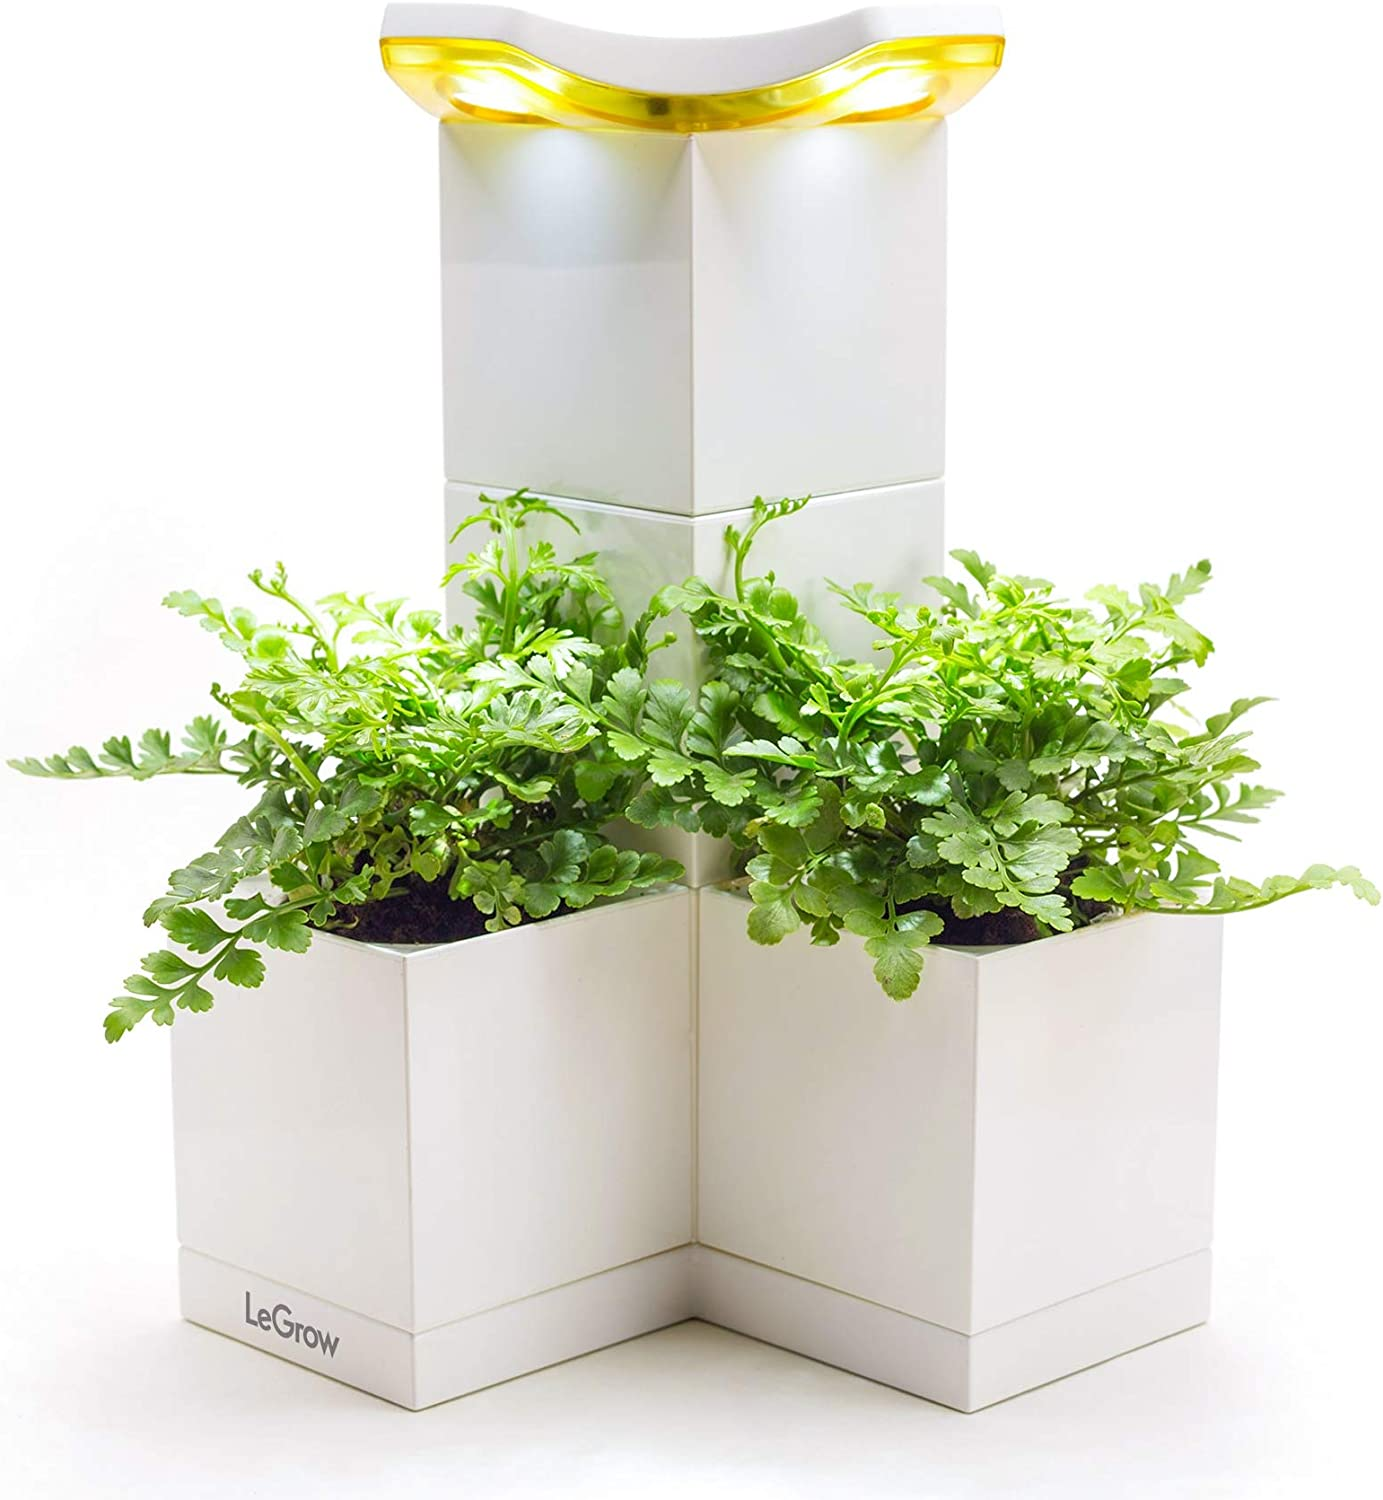 LeGrow Shine Smart Indoor Planter - Garden Tower with Artificial Sunlight - 5 Patented Design Stackable Plant Pots, 2 Bottom Connectors, 1 Plant Growth Lamp, 1 Base (Plants Not Included)